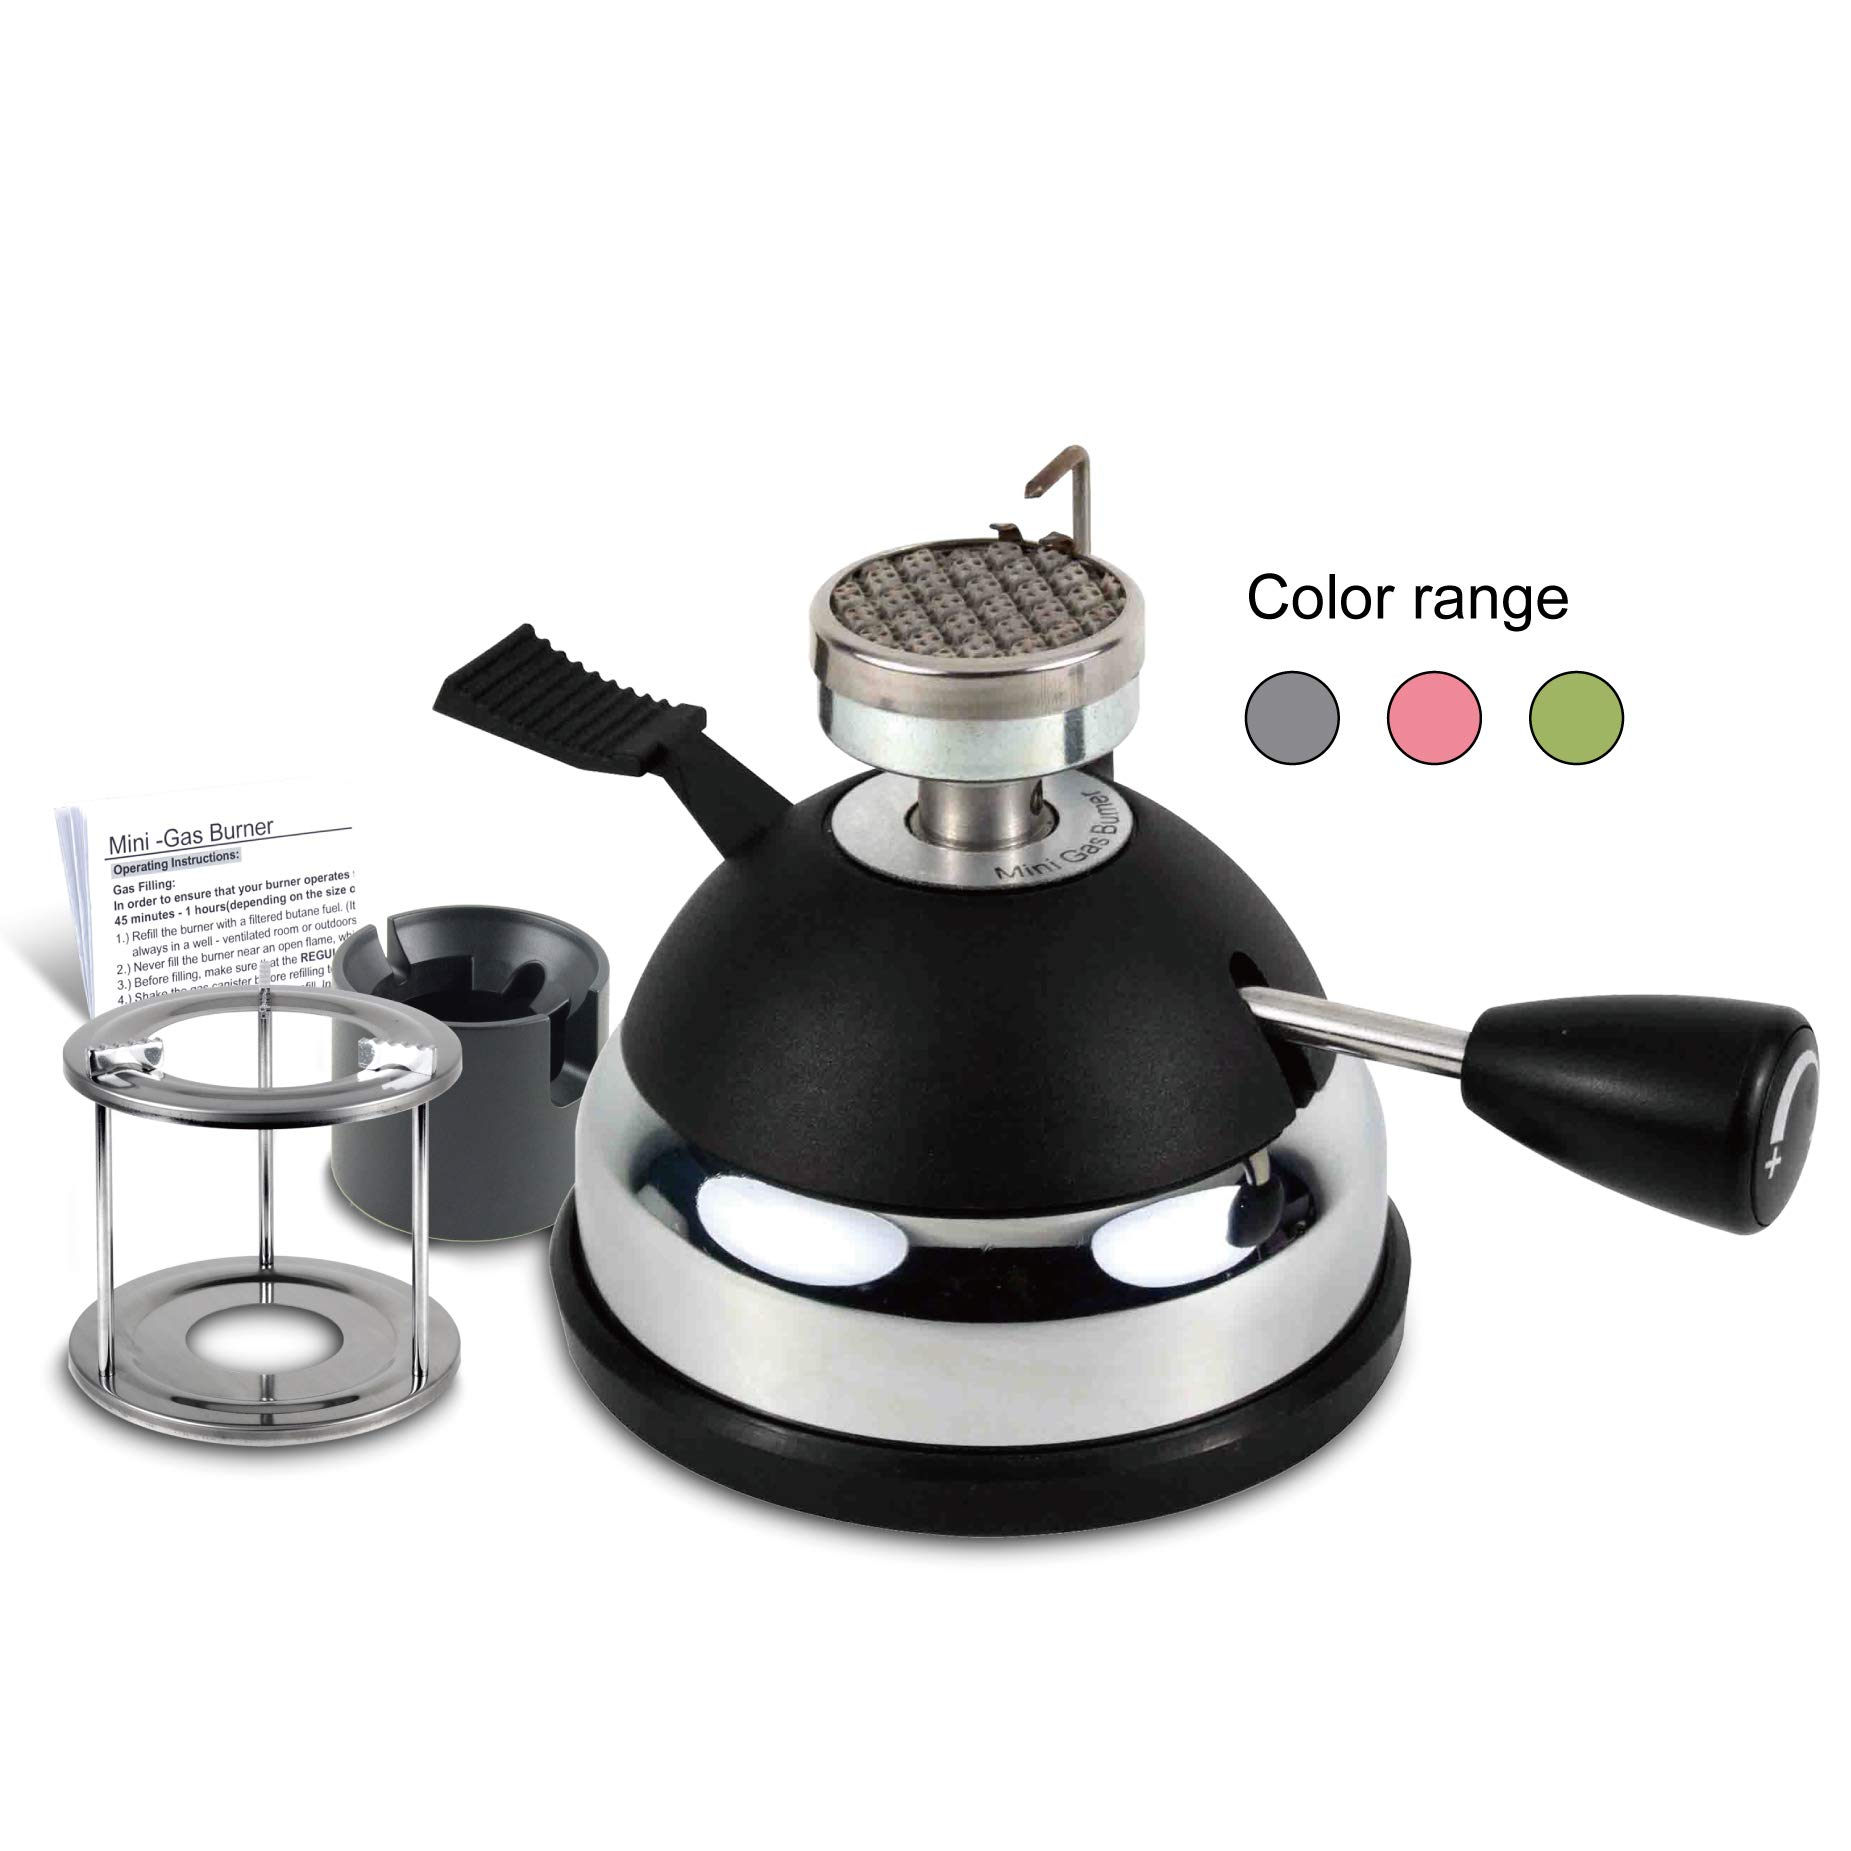 BLUEFIRE Butane Mini Burner for Tabletop Siphons Syphon, w Furnace Stand and Assembly Rack,Ceramic Windproof Torch Head,Portable Cooking Stove,Coffee Espresso Maker,Chafing,Soup Tureens,Fondue,Bunsen